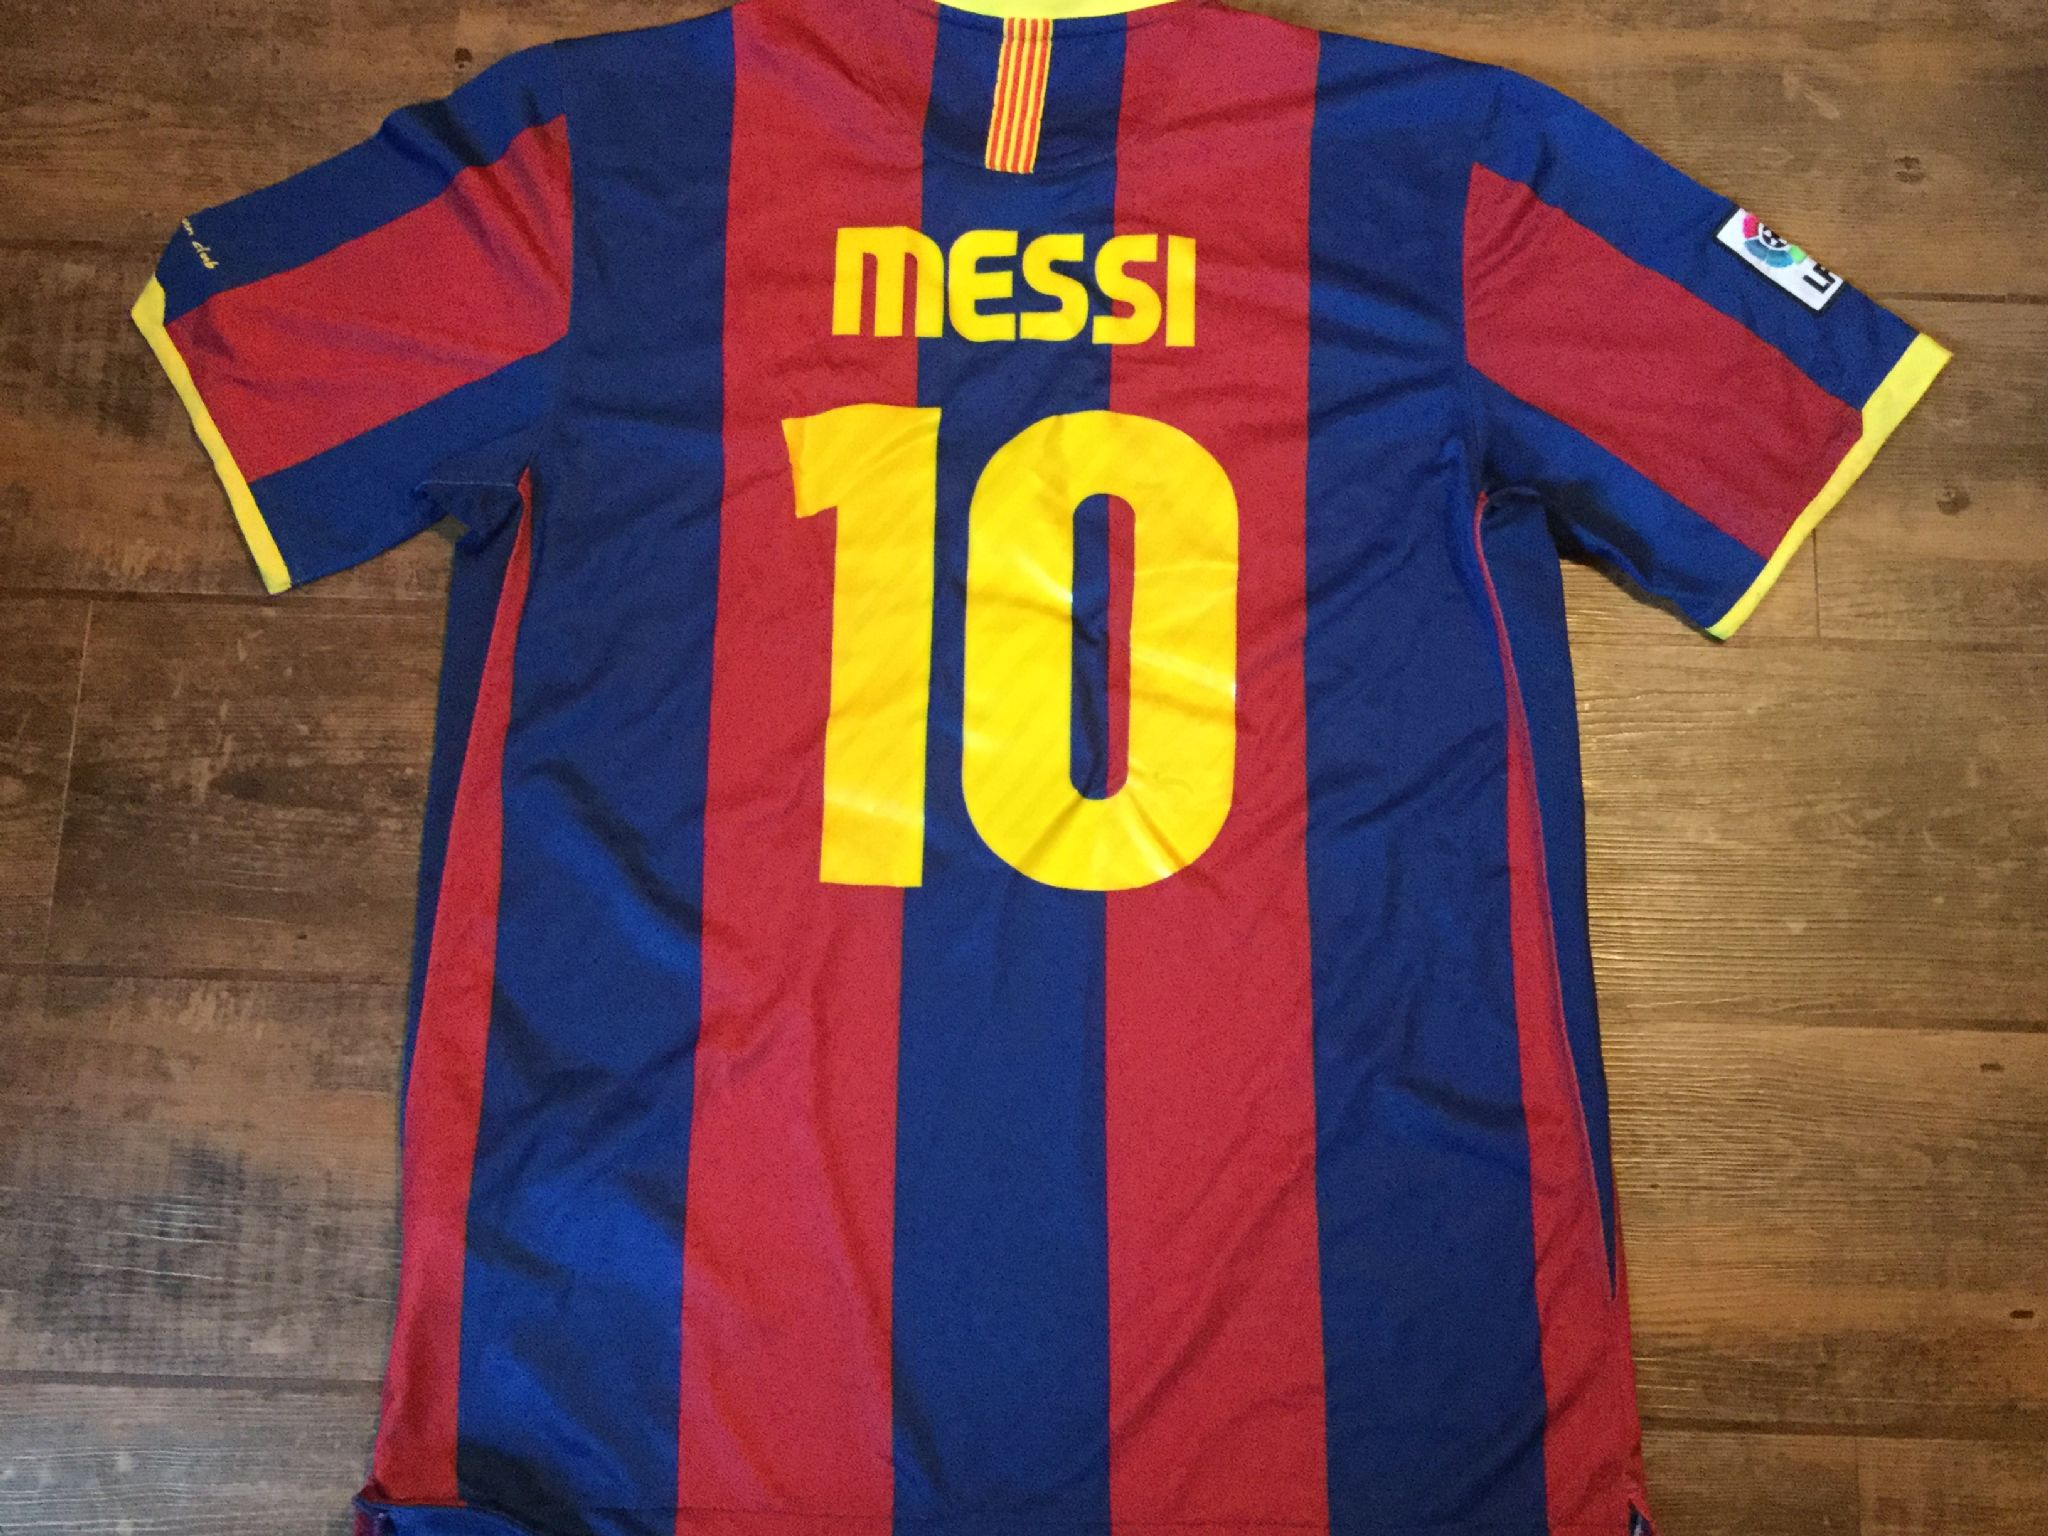 2b59a0cedef Global Classic Football Shirts | 2010 Barcelona Messi Old Vintage ...